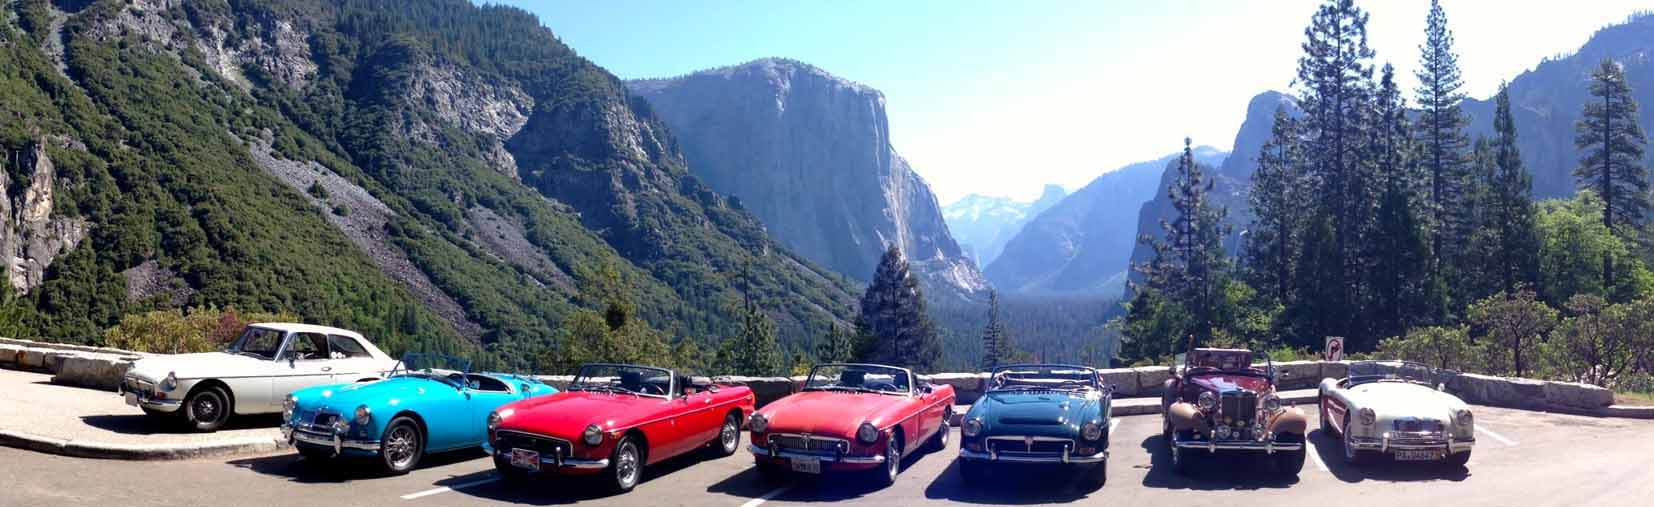 MG Club at Yosemite